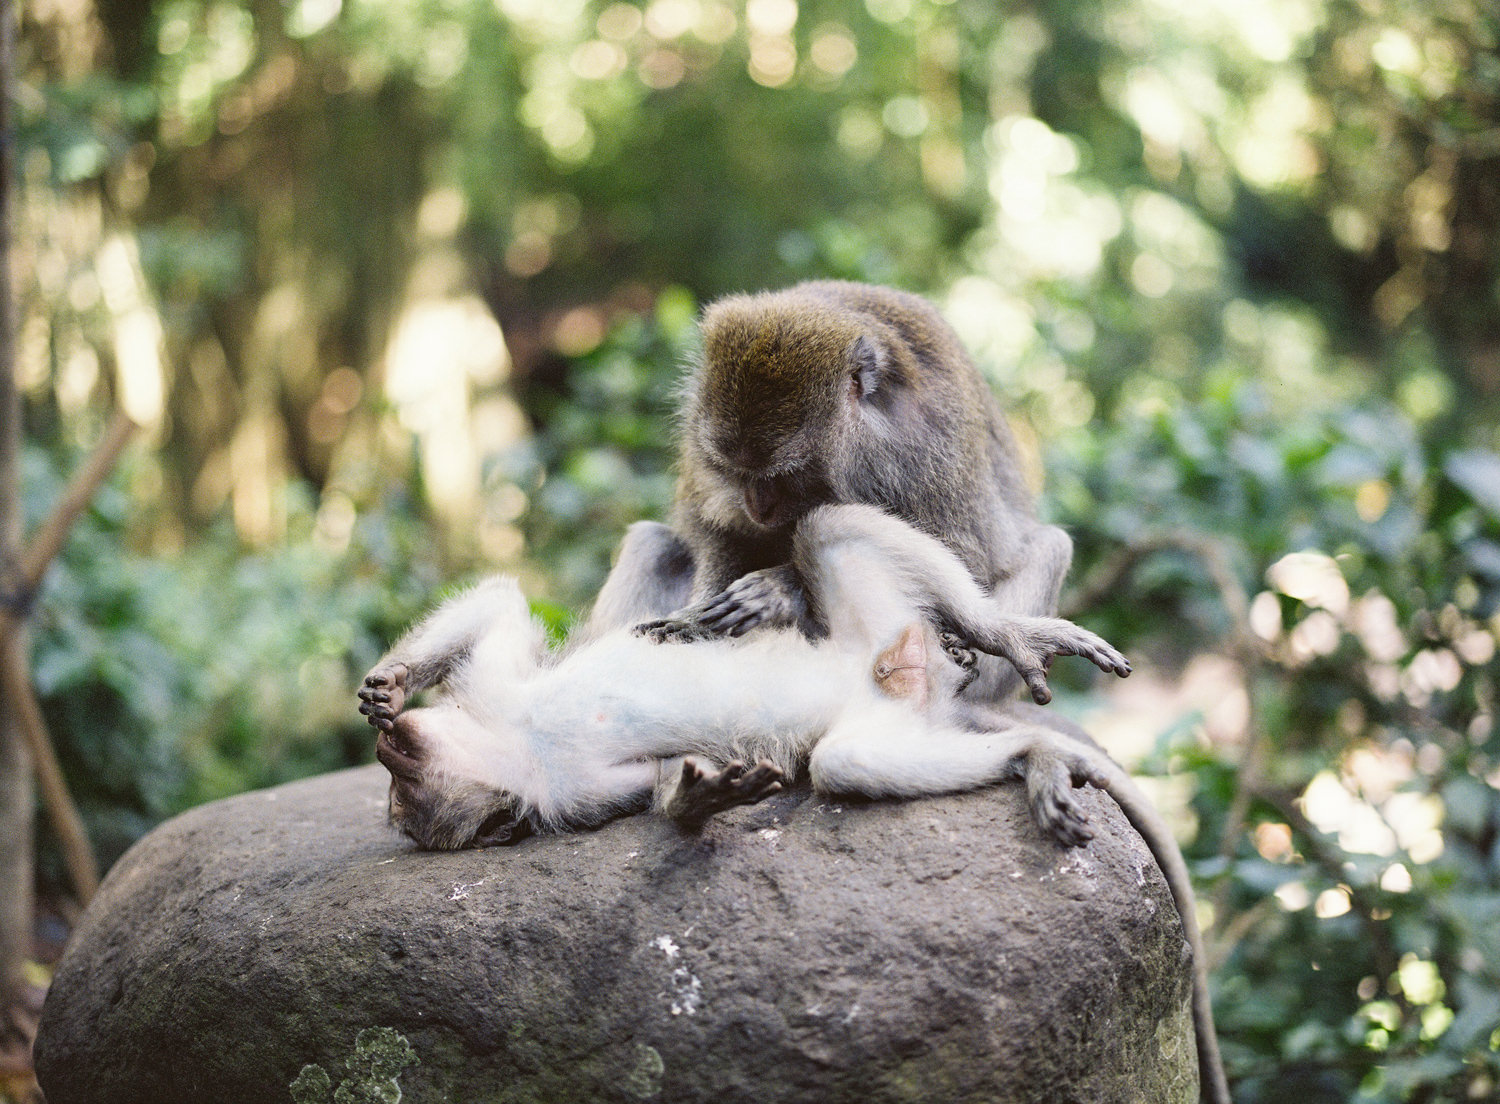 native monkeys in the monkey forest